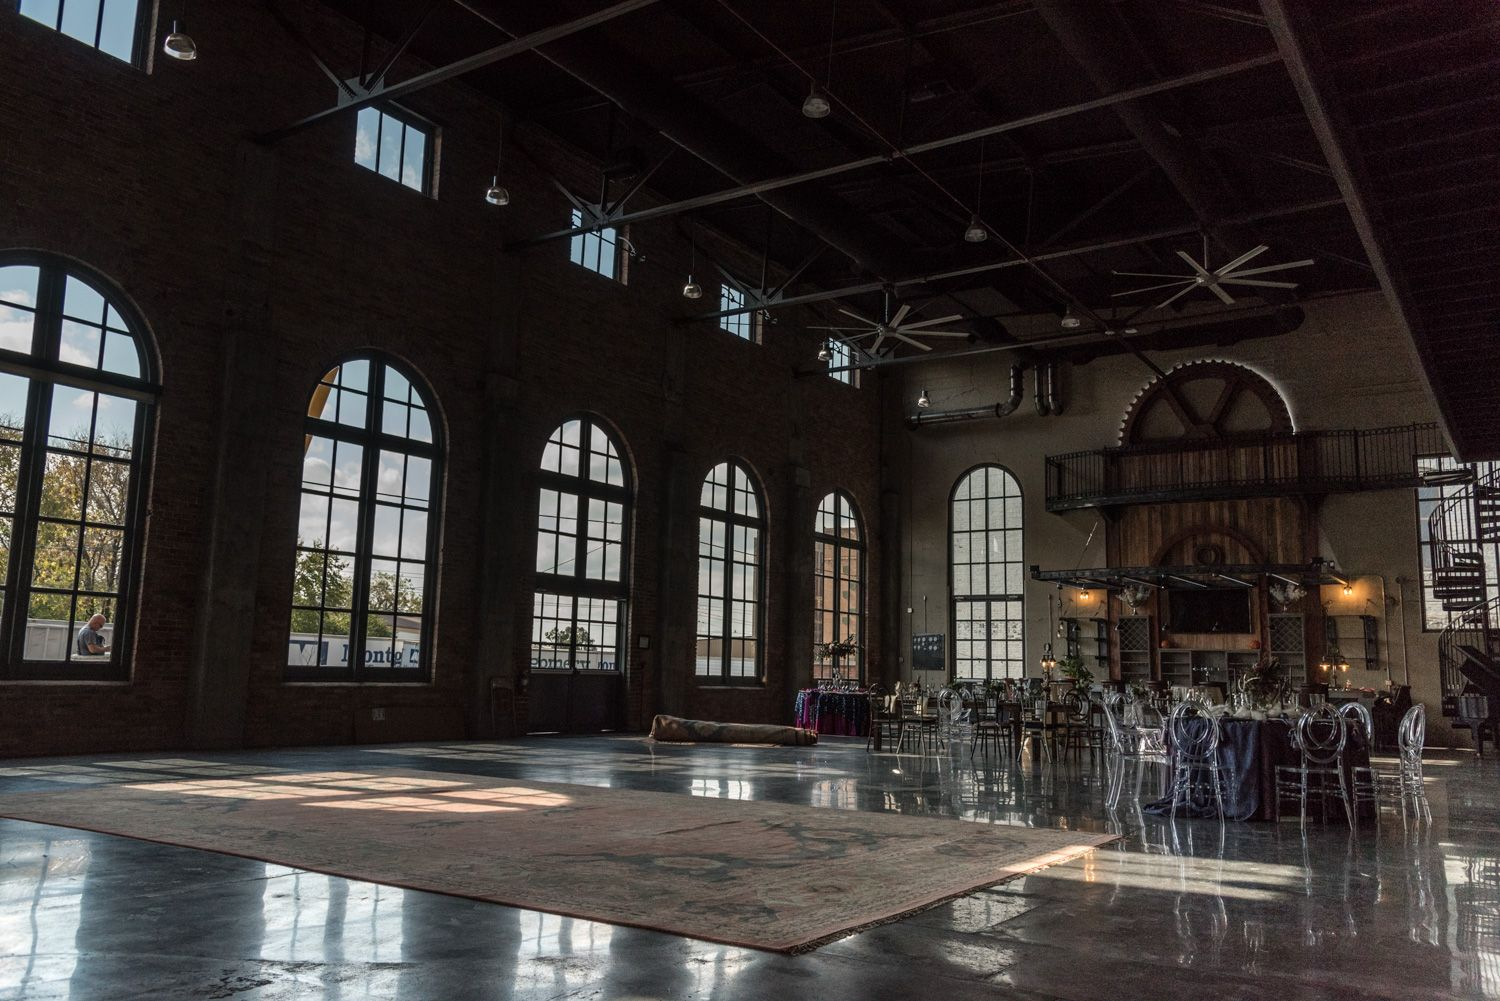 Dayton S Newest Historic Wedding Reception Venue Is The Steam Plant Dayton Ohio Cincinnati Wedding Venues Ohio Wedding Venues Cincinnati Wedding Photographers